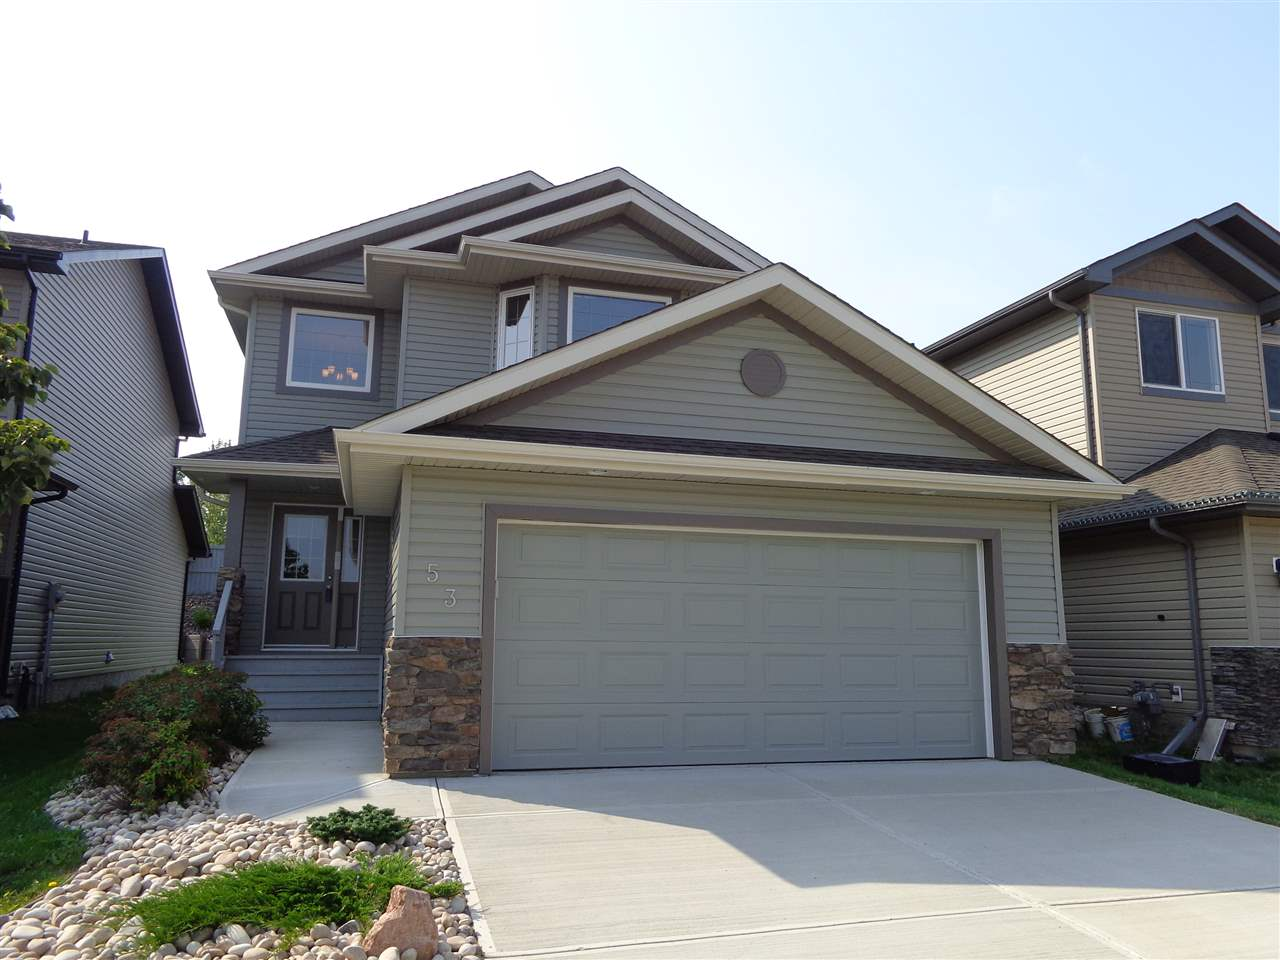 Main Photo: 53 SILVERSTONE Drive: Stony Plain House for sale : MLS® # E4078101